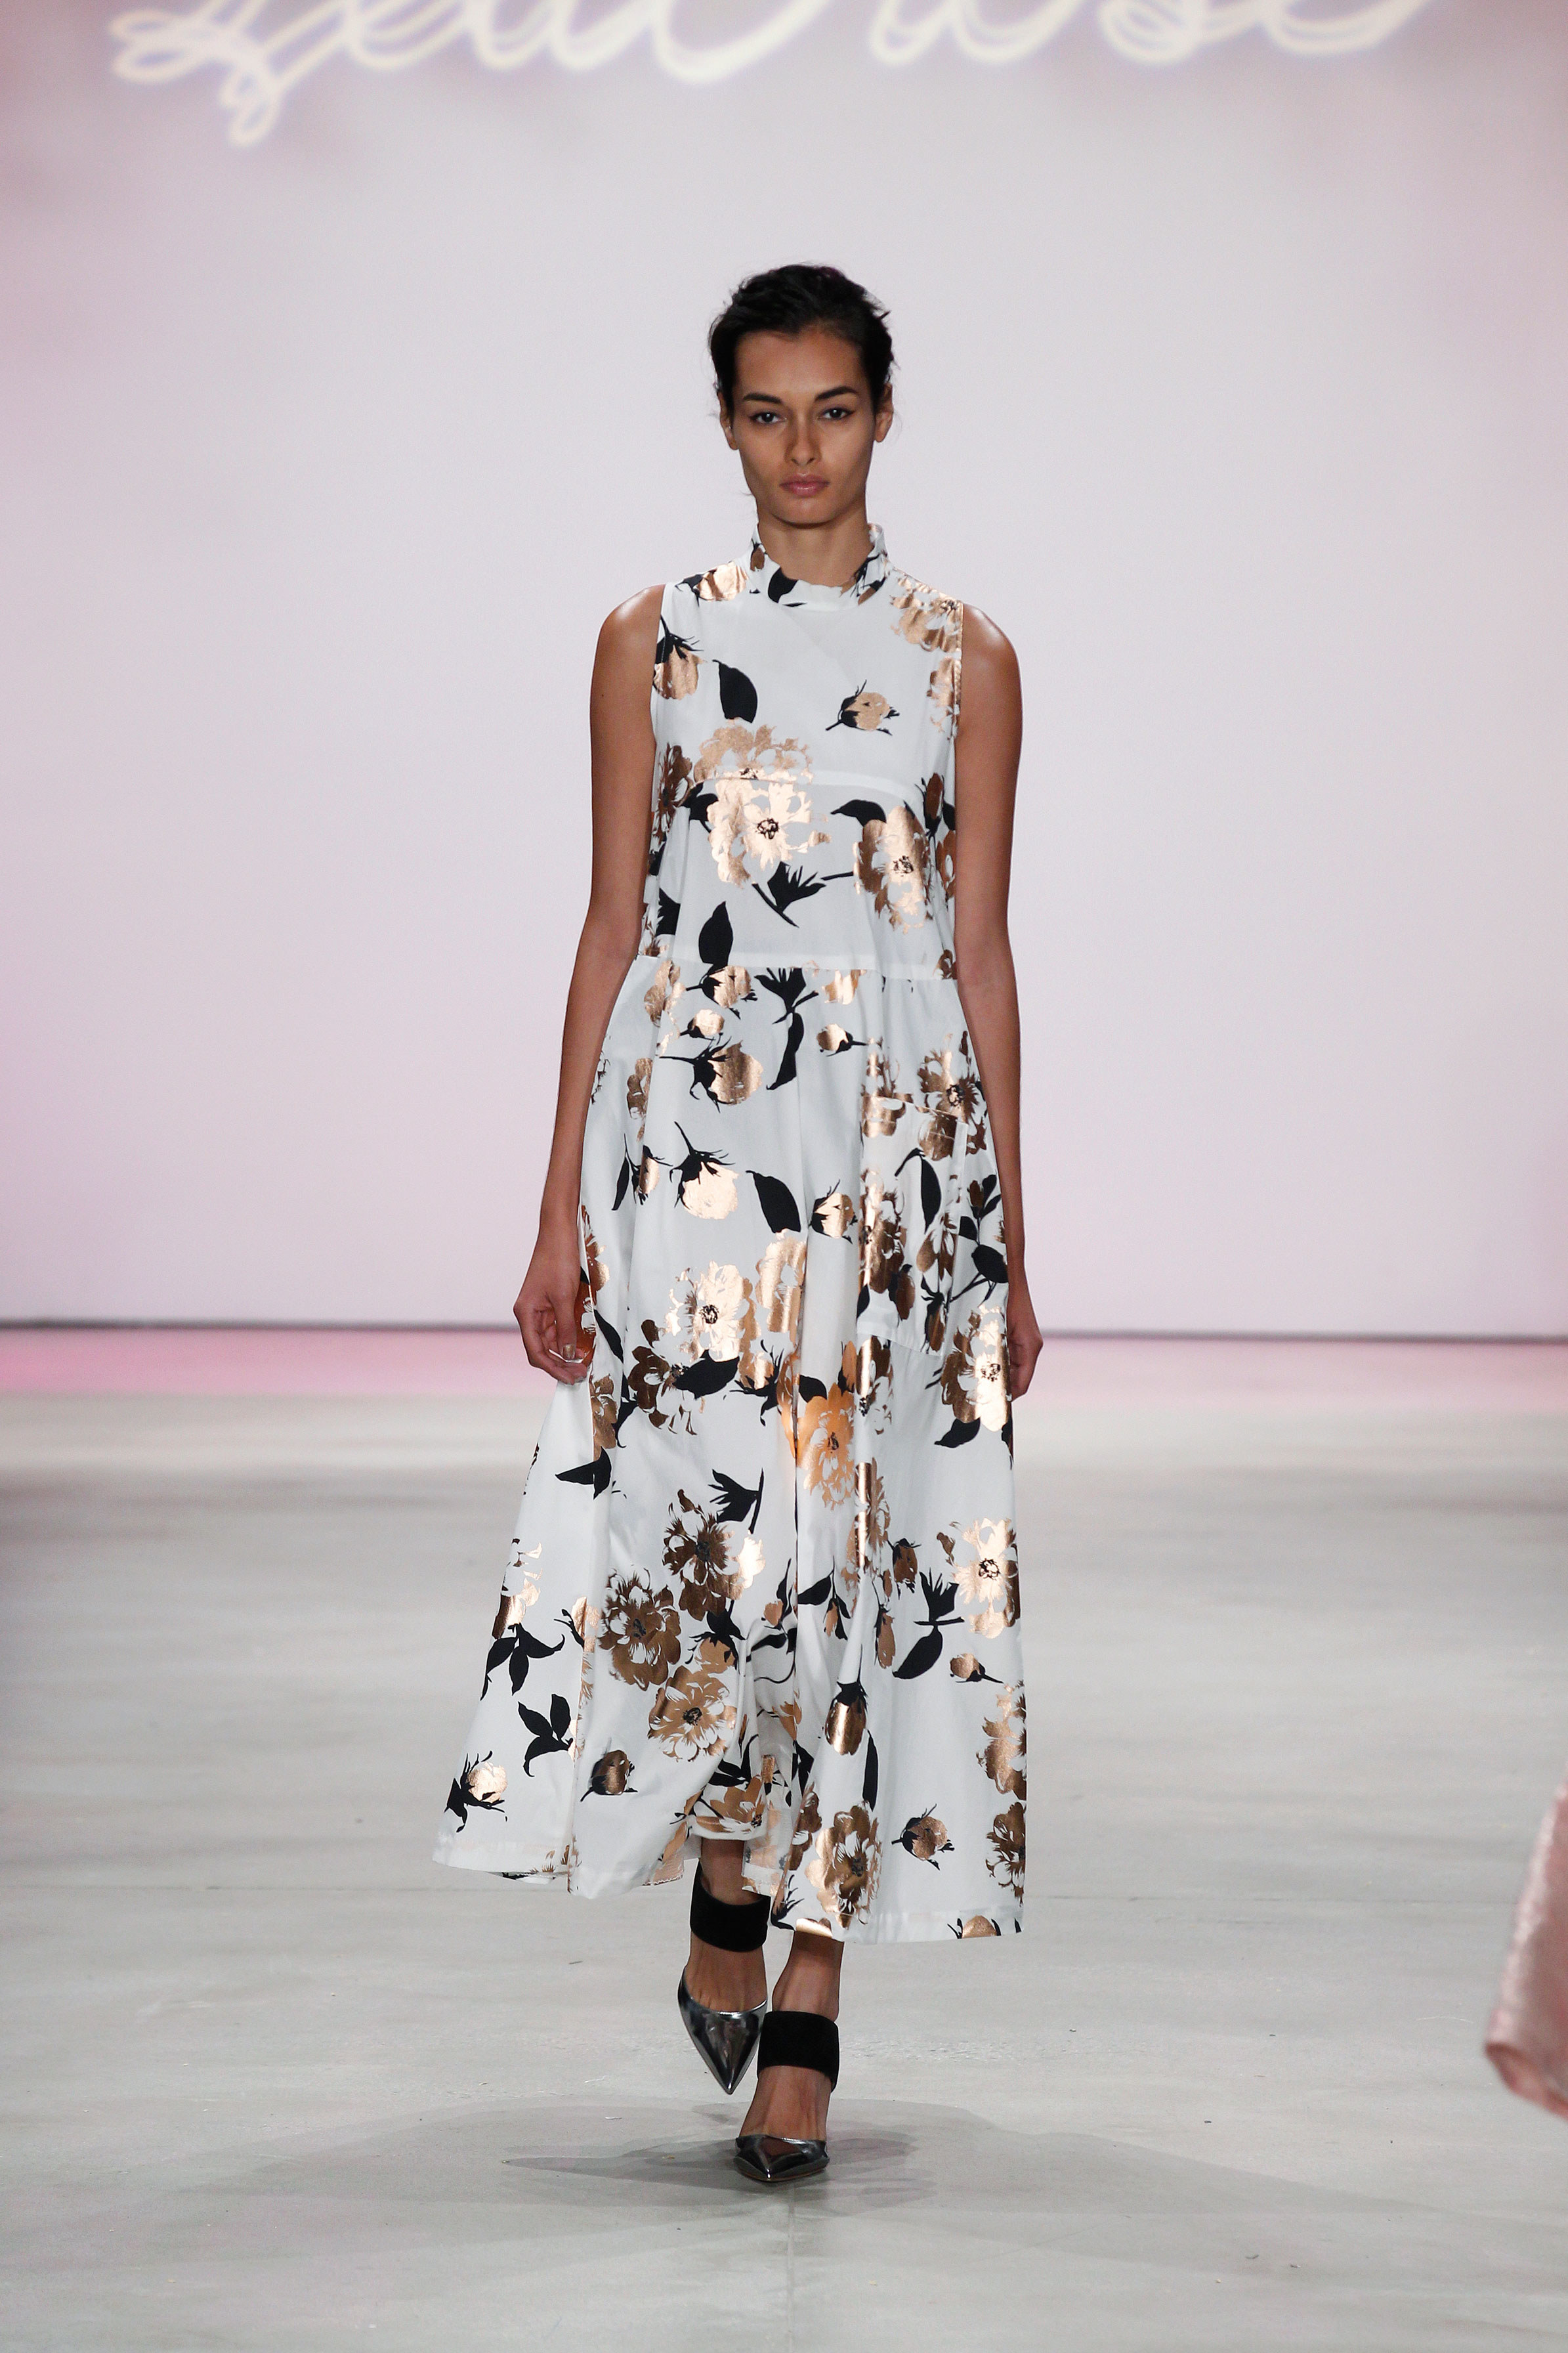 Lela Rose    This dress's white canvas is a great contrast to the black and gold metallic print and I'm a big fan of pointed toe shoes—they really add to the entire silhouette of the look.